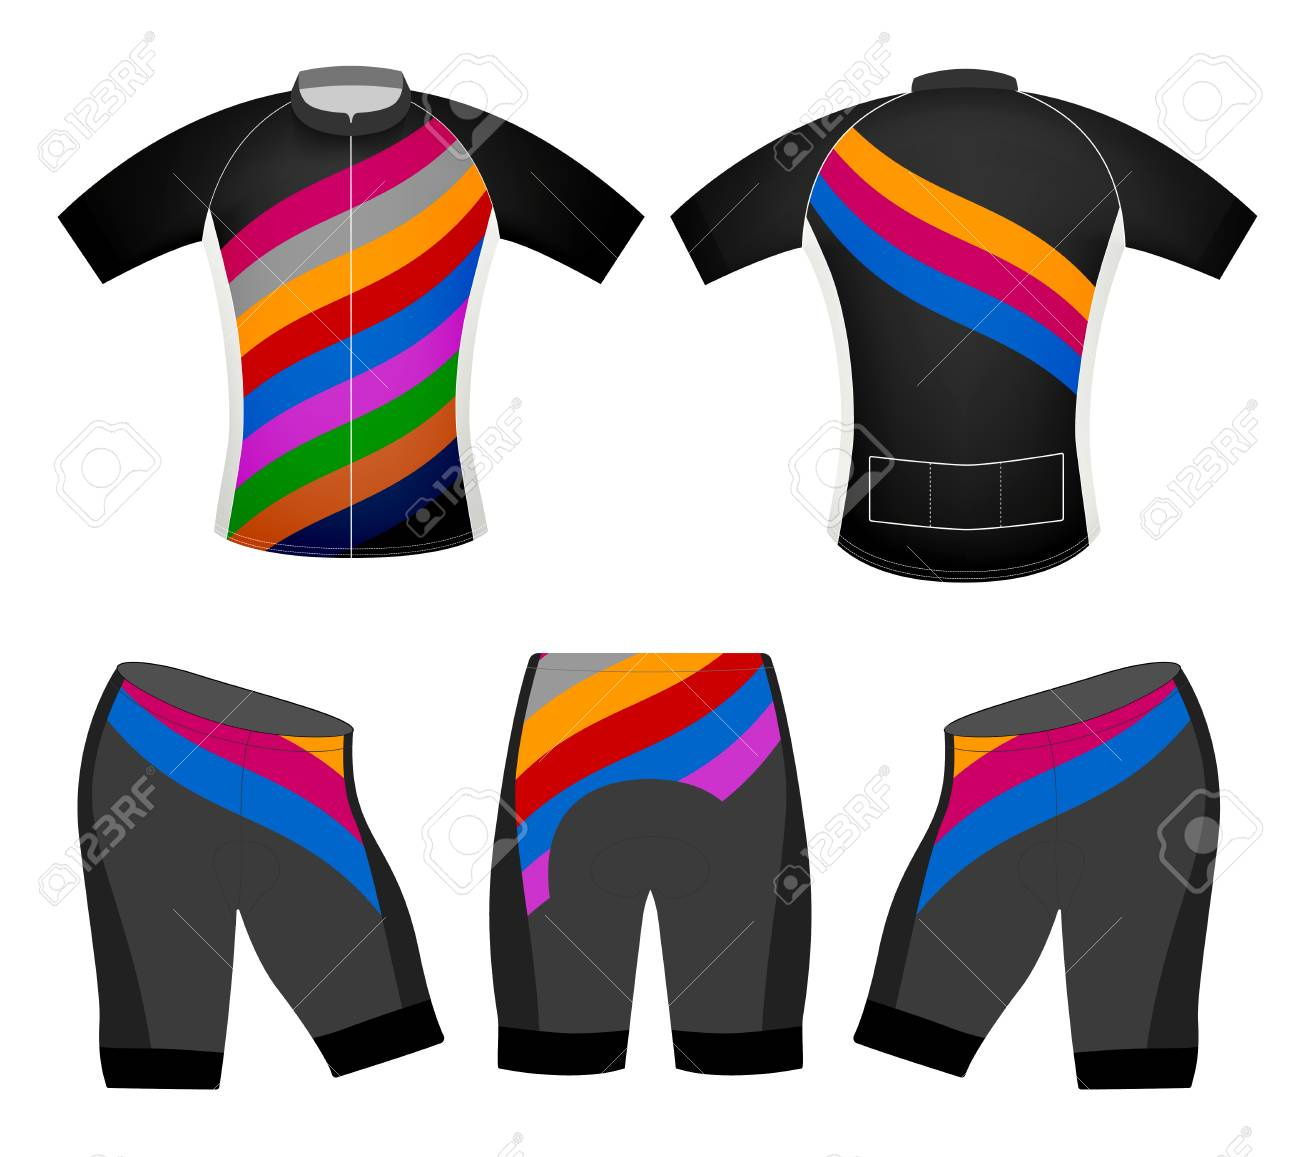 Realistic multi-colored cycling uniform template on white background. Stock  Vector - 85051199 58912f481